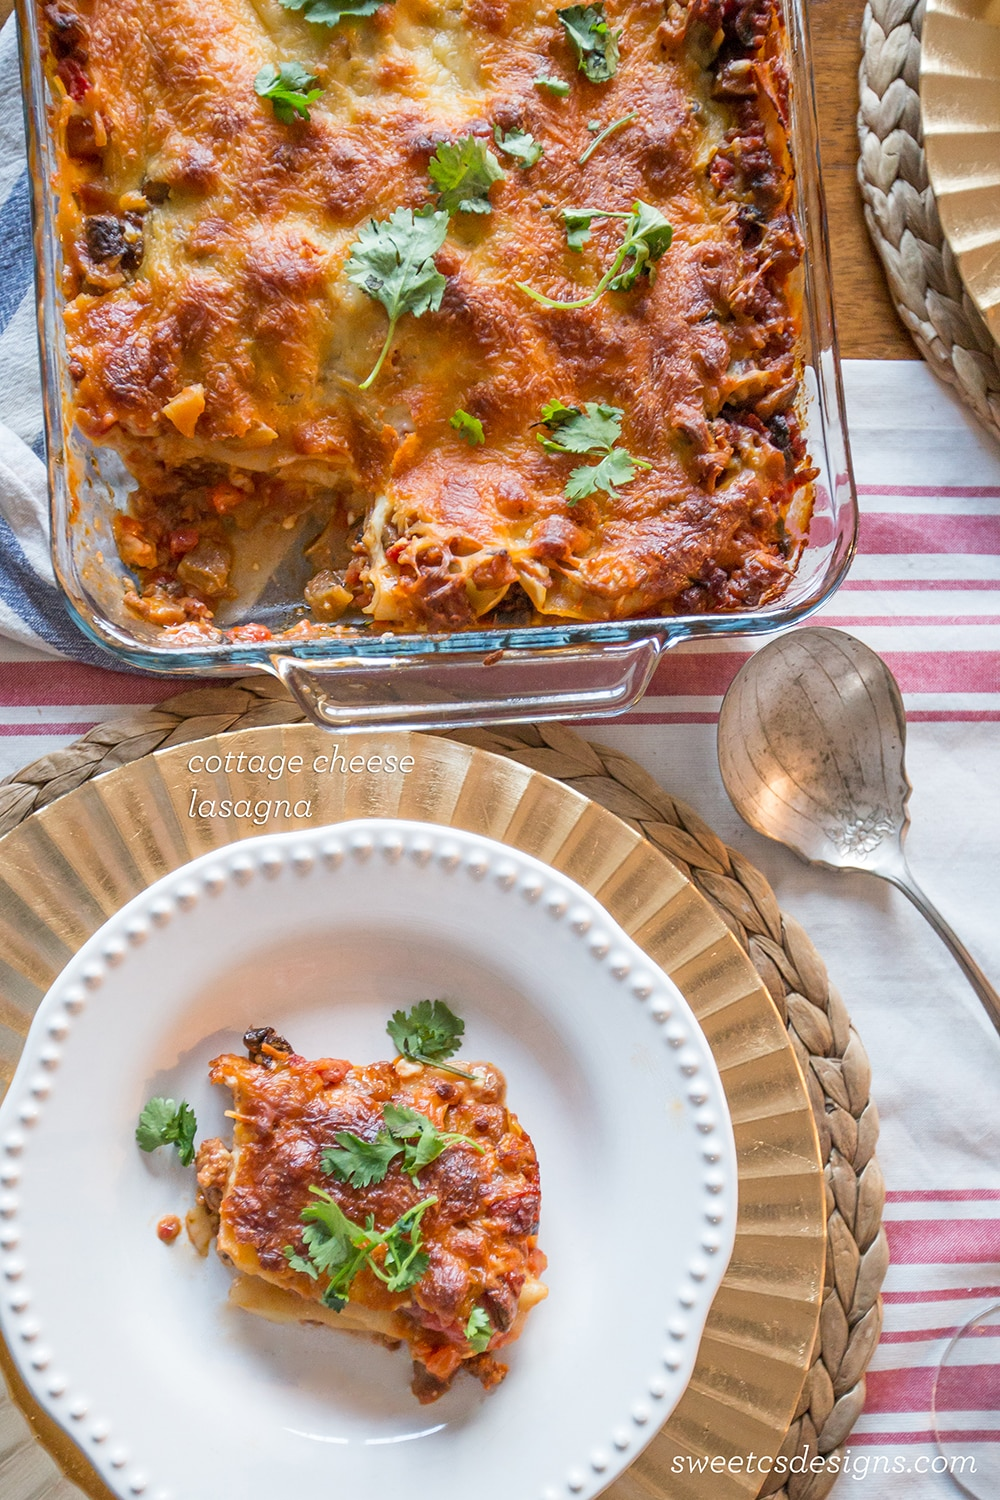 Cottage Cheese Lasagna {Sweet C's}